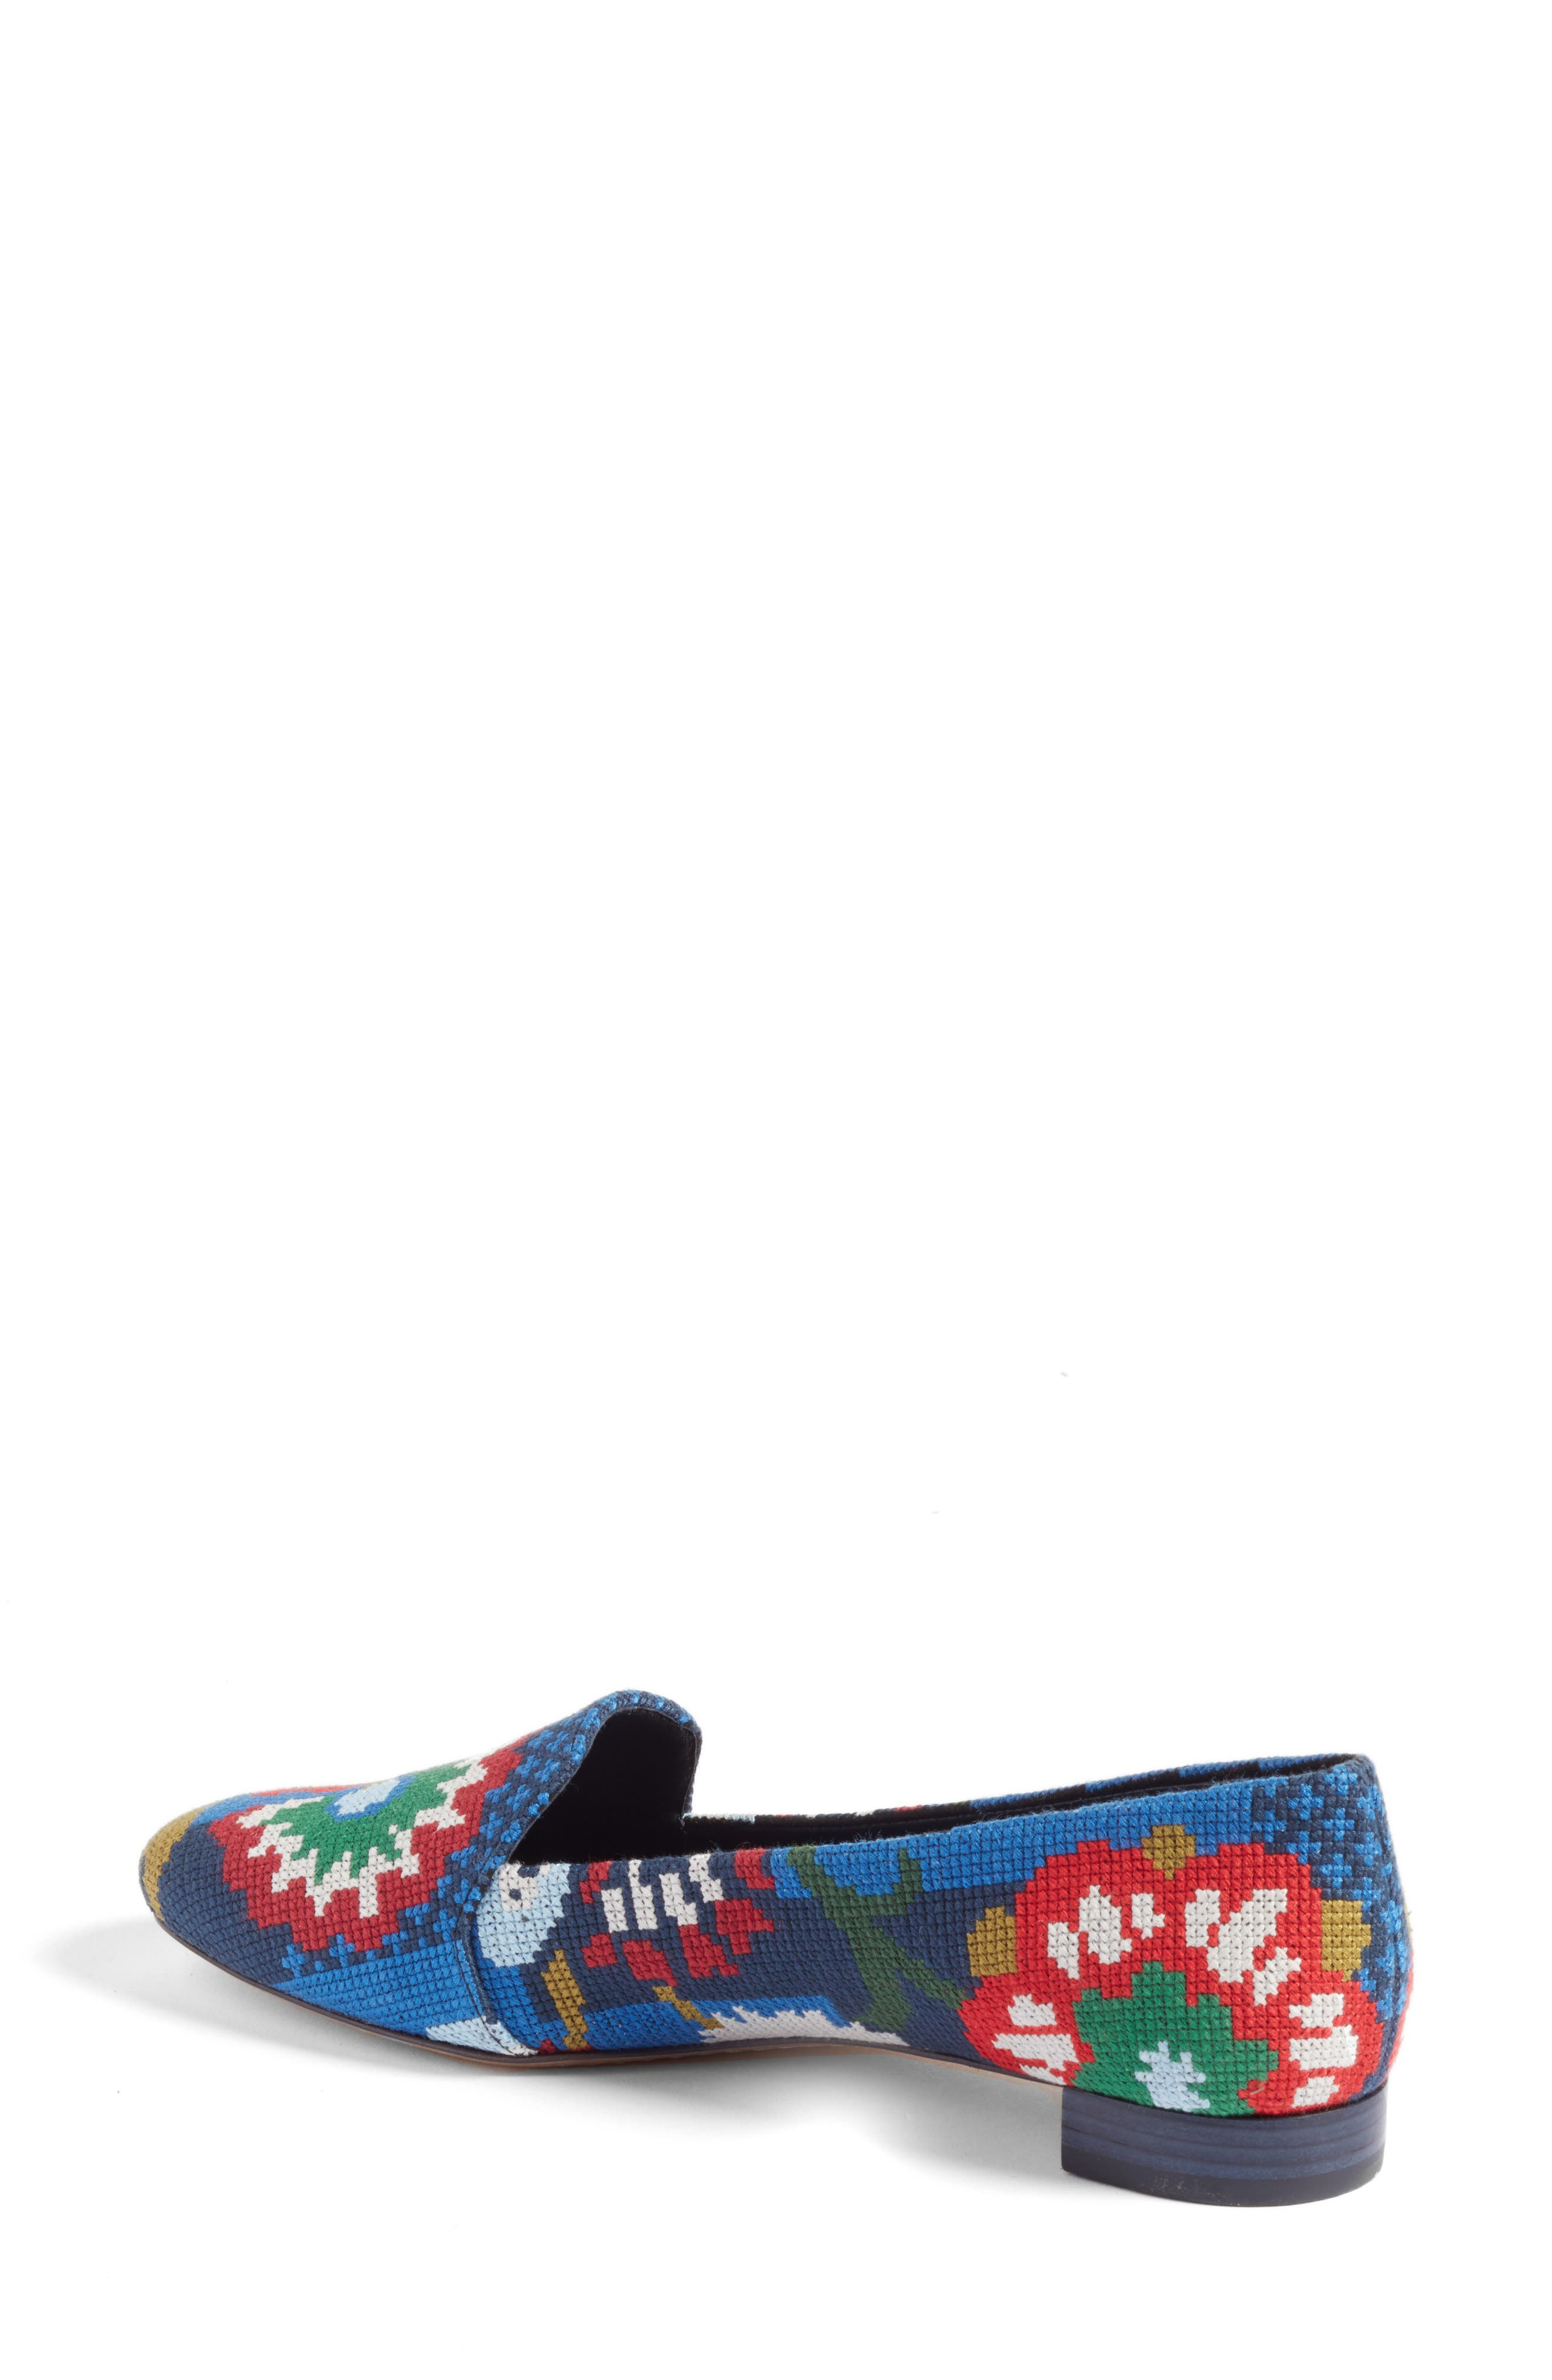 Sadie Floral Cross Stitch Loafer,                             Alternate thumbnail 2, color,                             478